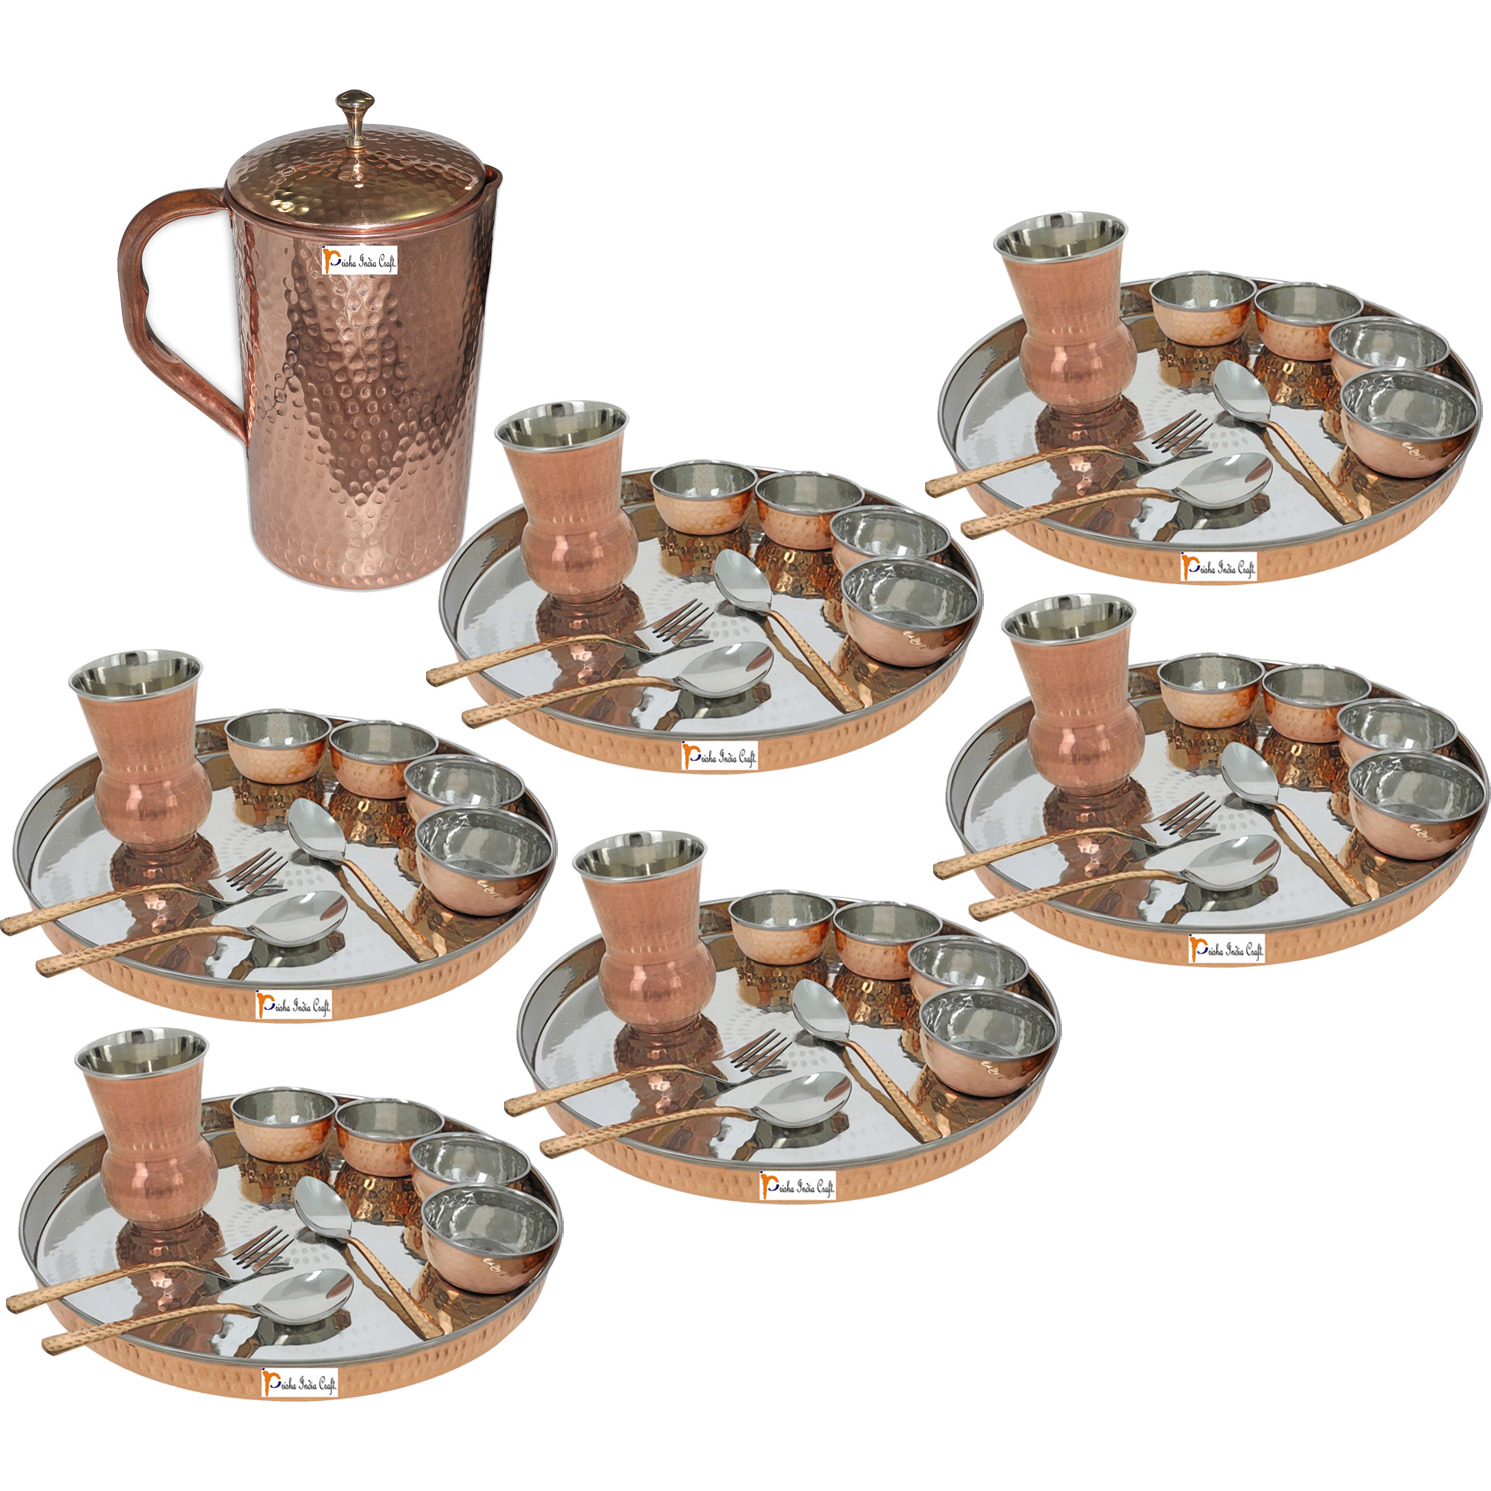 Prisha India Craft B. Set of 6 Dinnerware Traditional Stainless Steel Copper Dinner Set of Thali Plate, Bowls, Glass and Spoons, Dia 13  With 1 Pure Copper Hammered Pitcher Jug - Christmas Gift